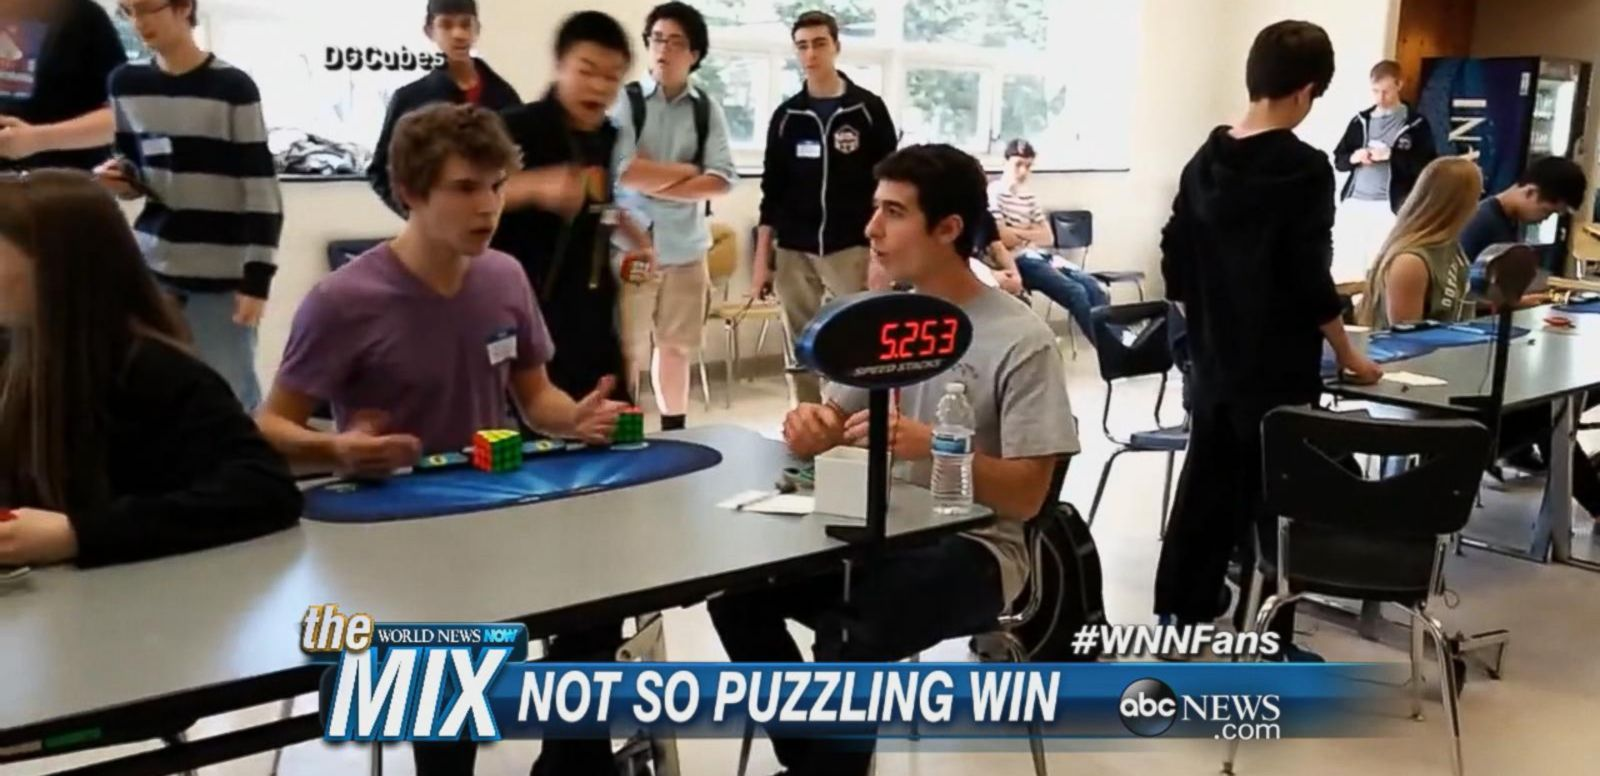 VIDEO: Collin Burns solved a traditional 3x3x3 Rubik's Cube in just 5.25 seconds over the weekend at an official World Cube Association competition.